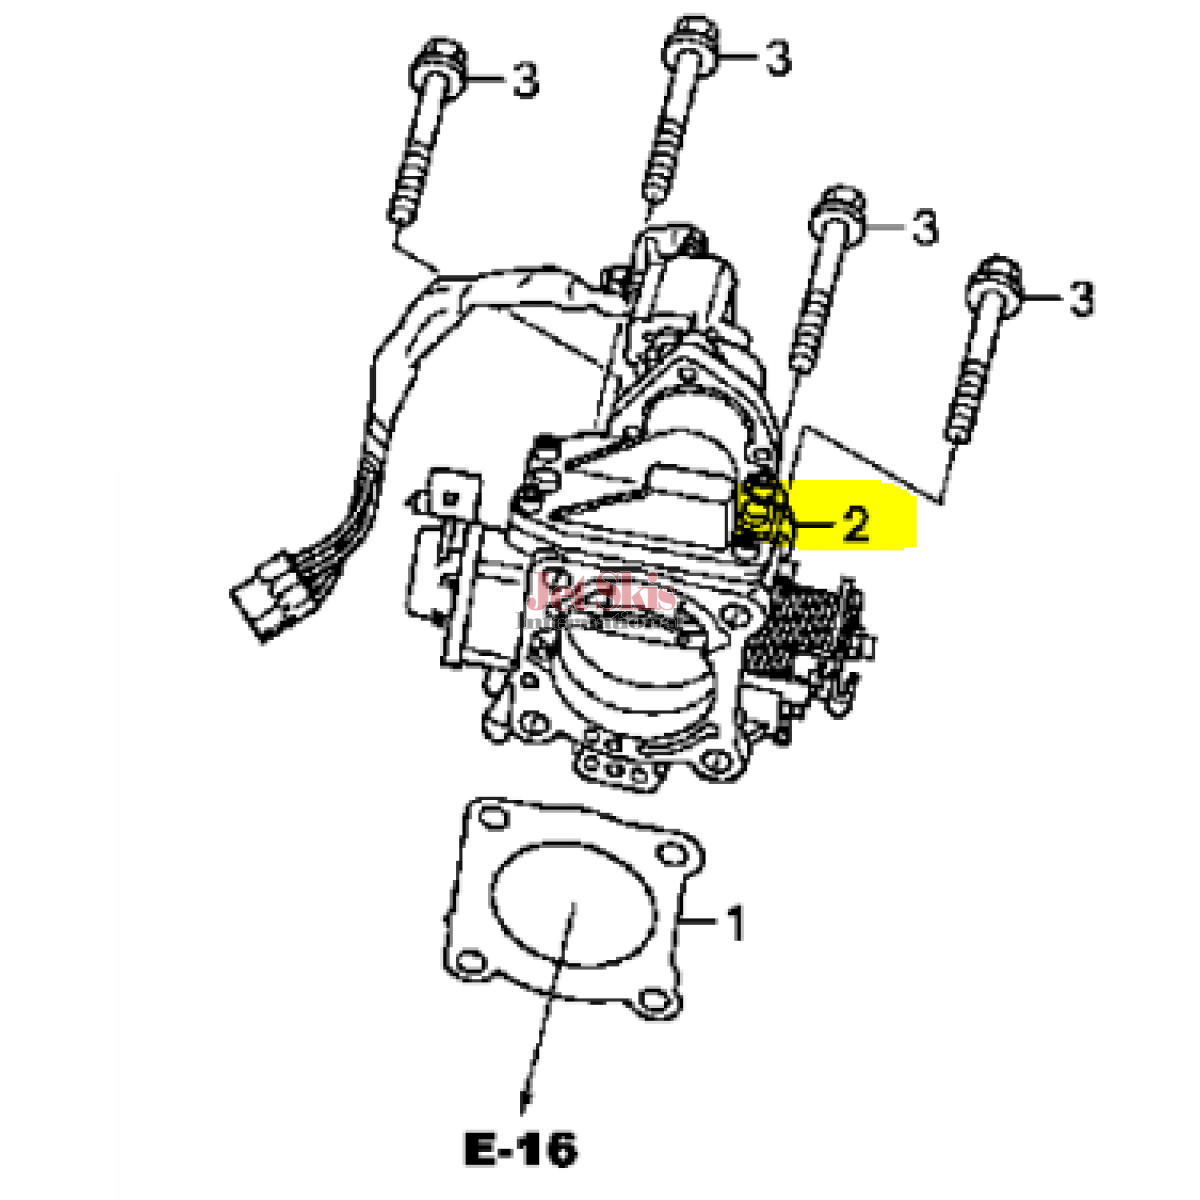 Honda Aquatrax Hw5 901 Throttle Body Assembly